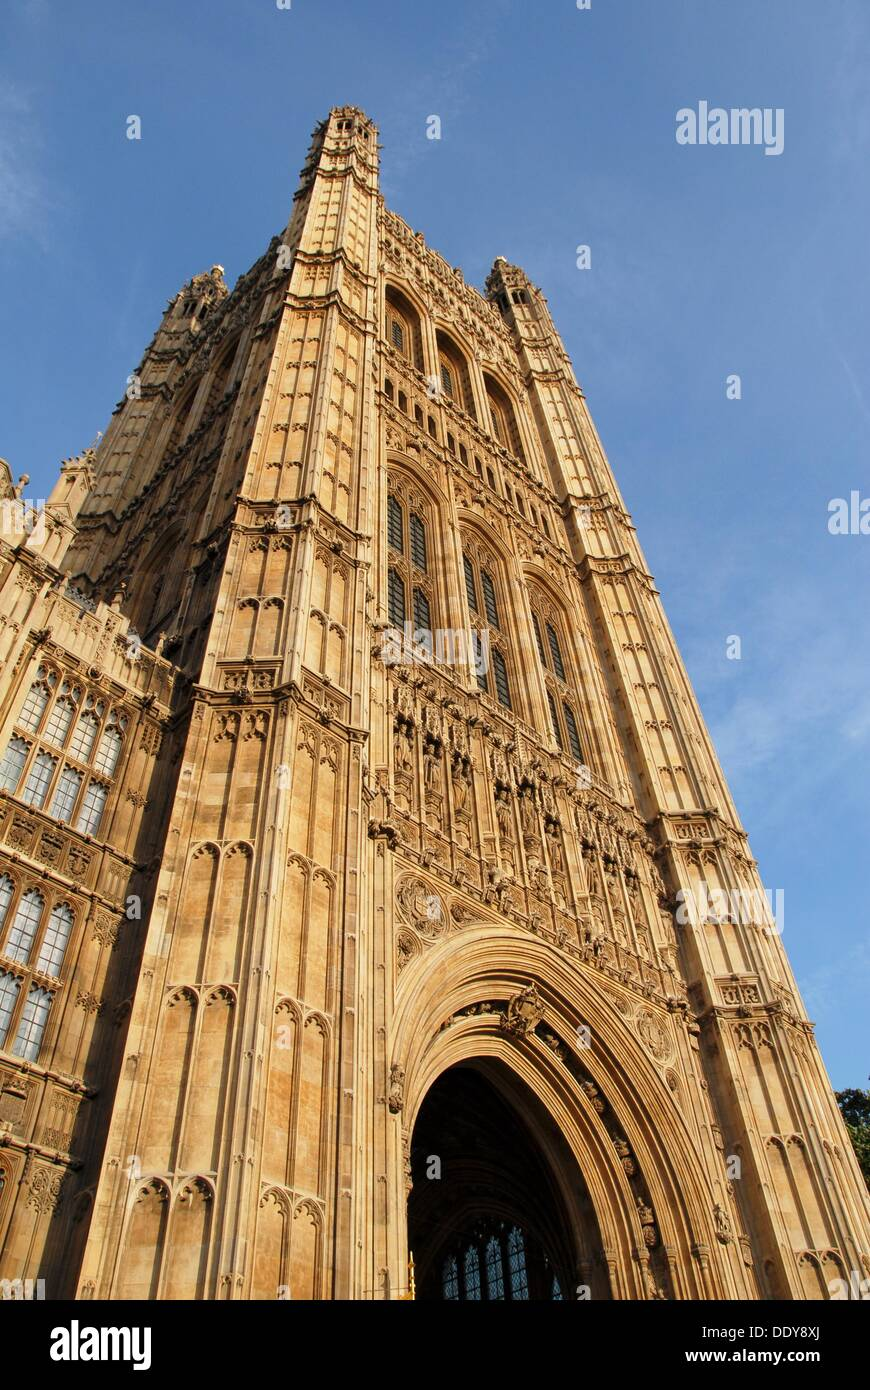 Victoria Tower. Houses of Parliament. Westminster Hall. Westminster, London, England, Great Britain, Europe - Stock Image